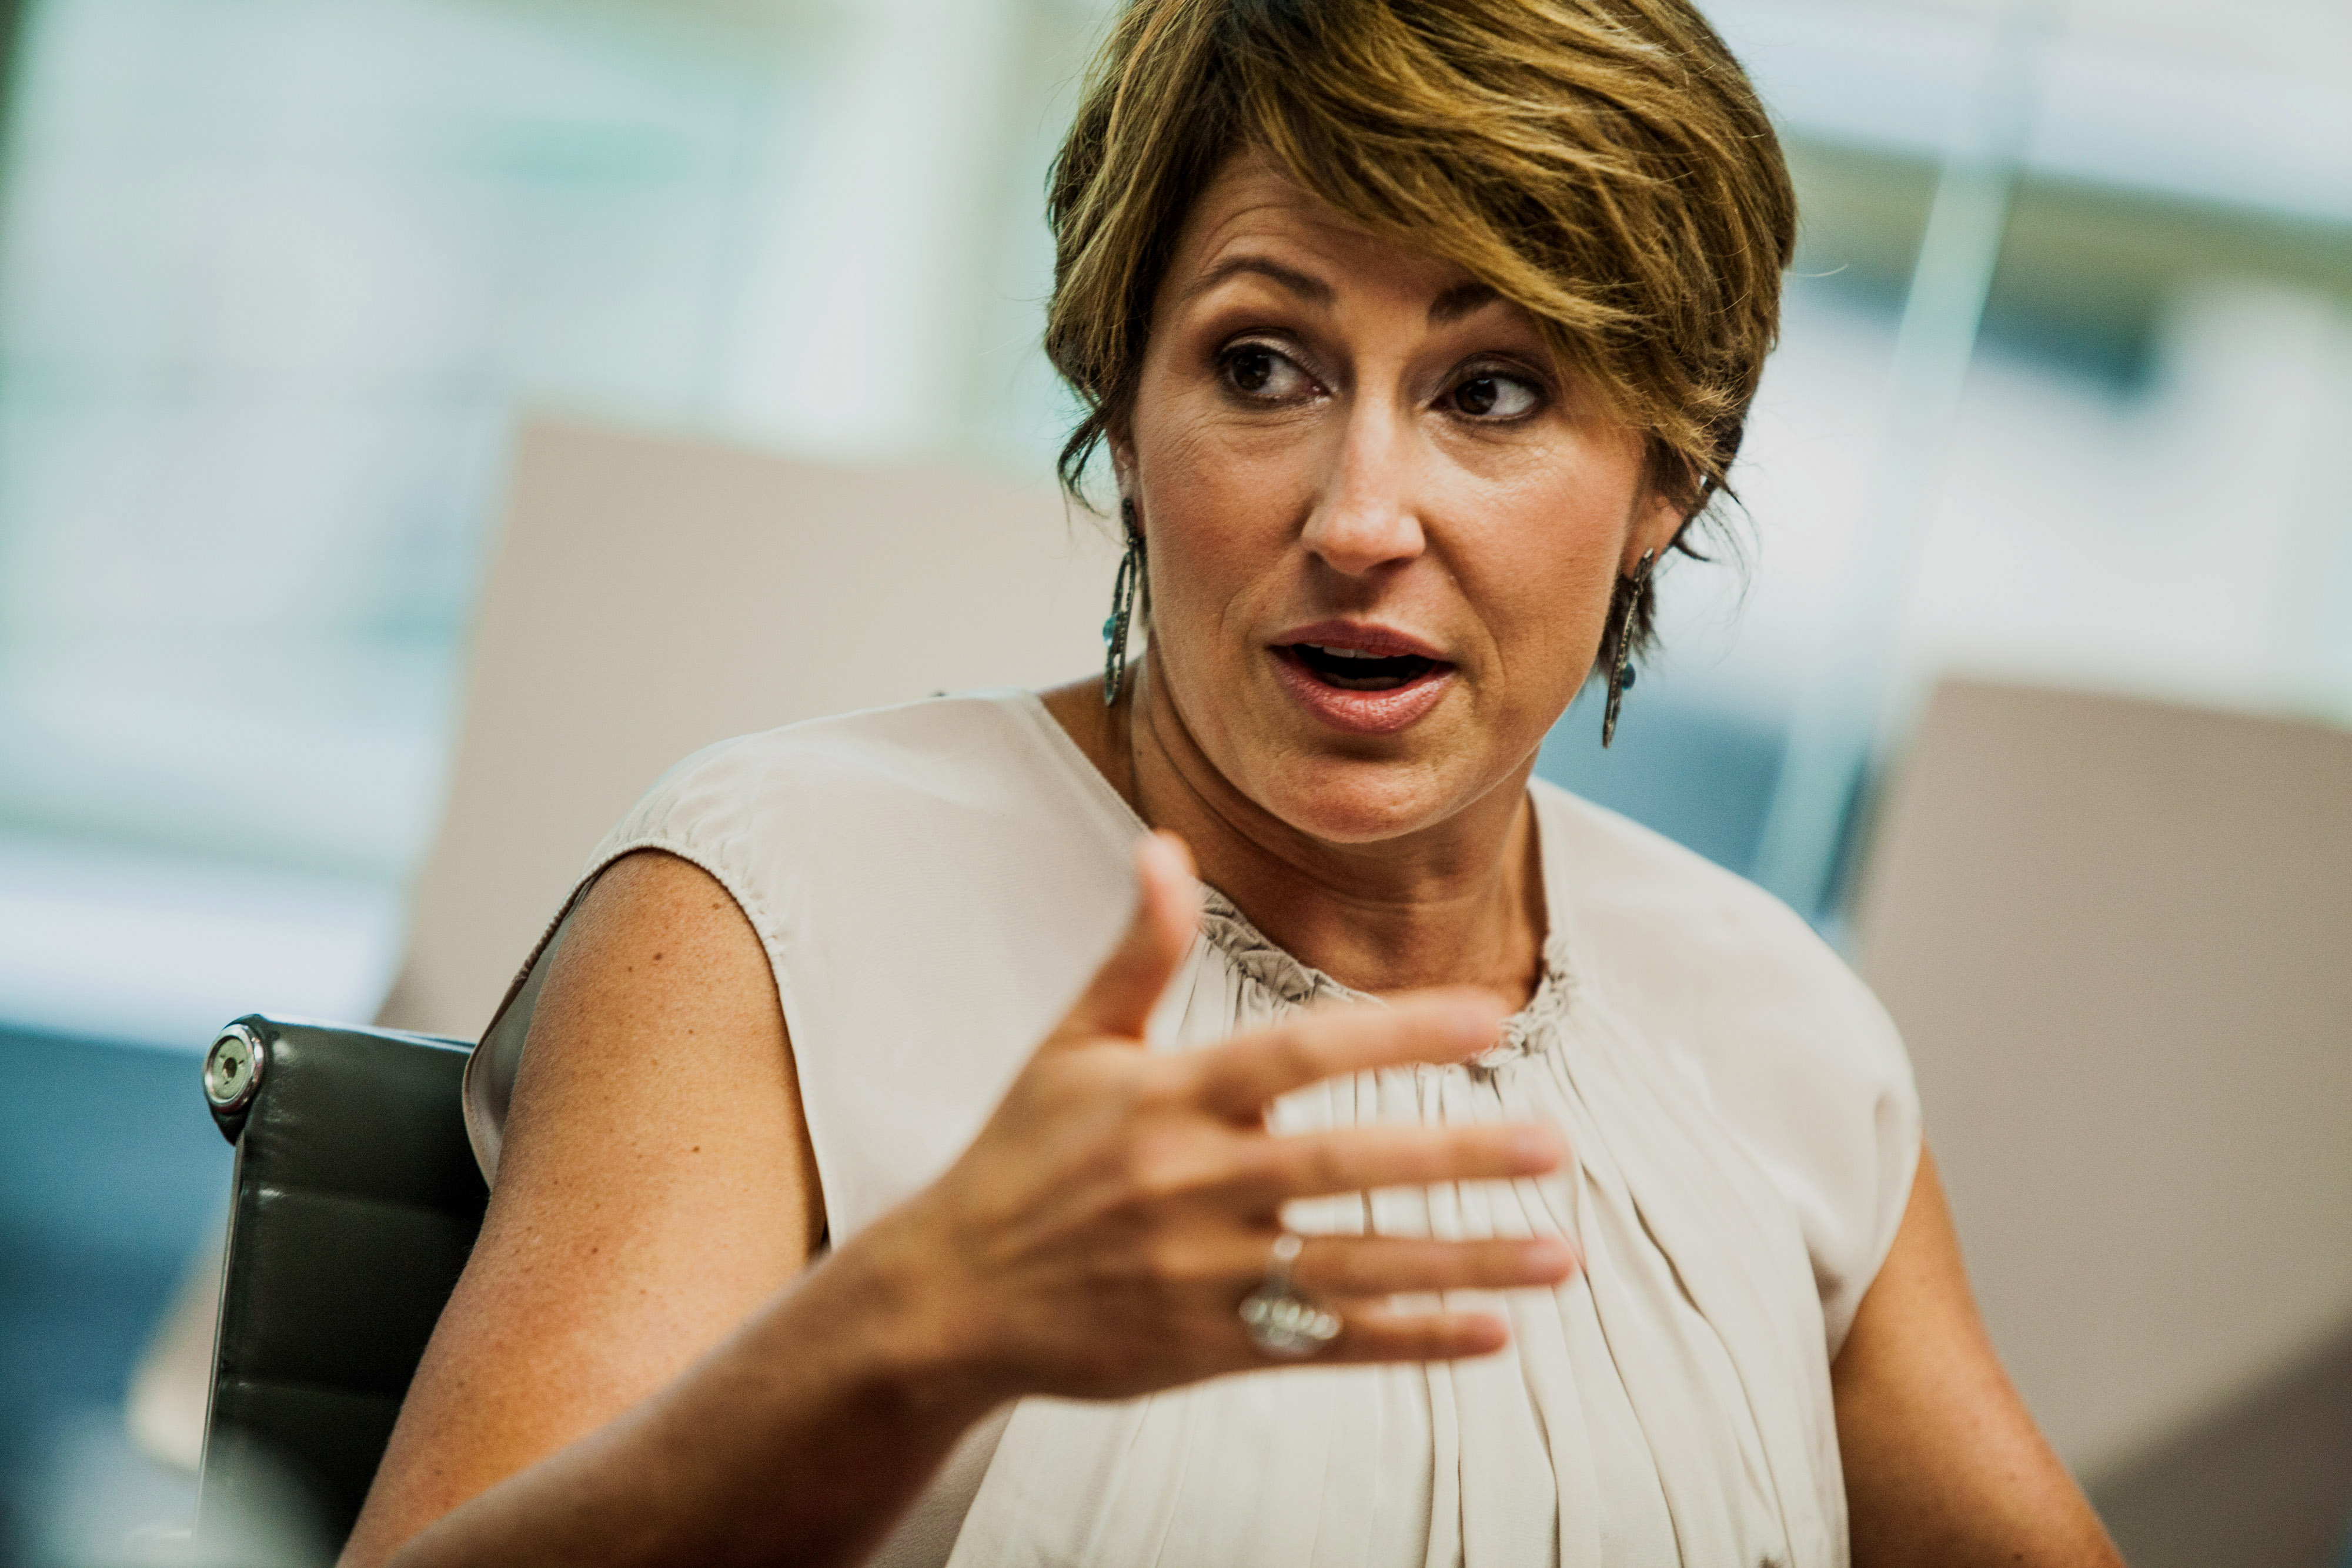 Mylan Inc. Chief Executive Officer Heather Bresch Interview